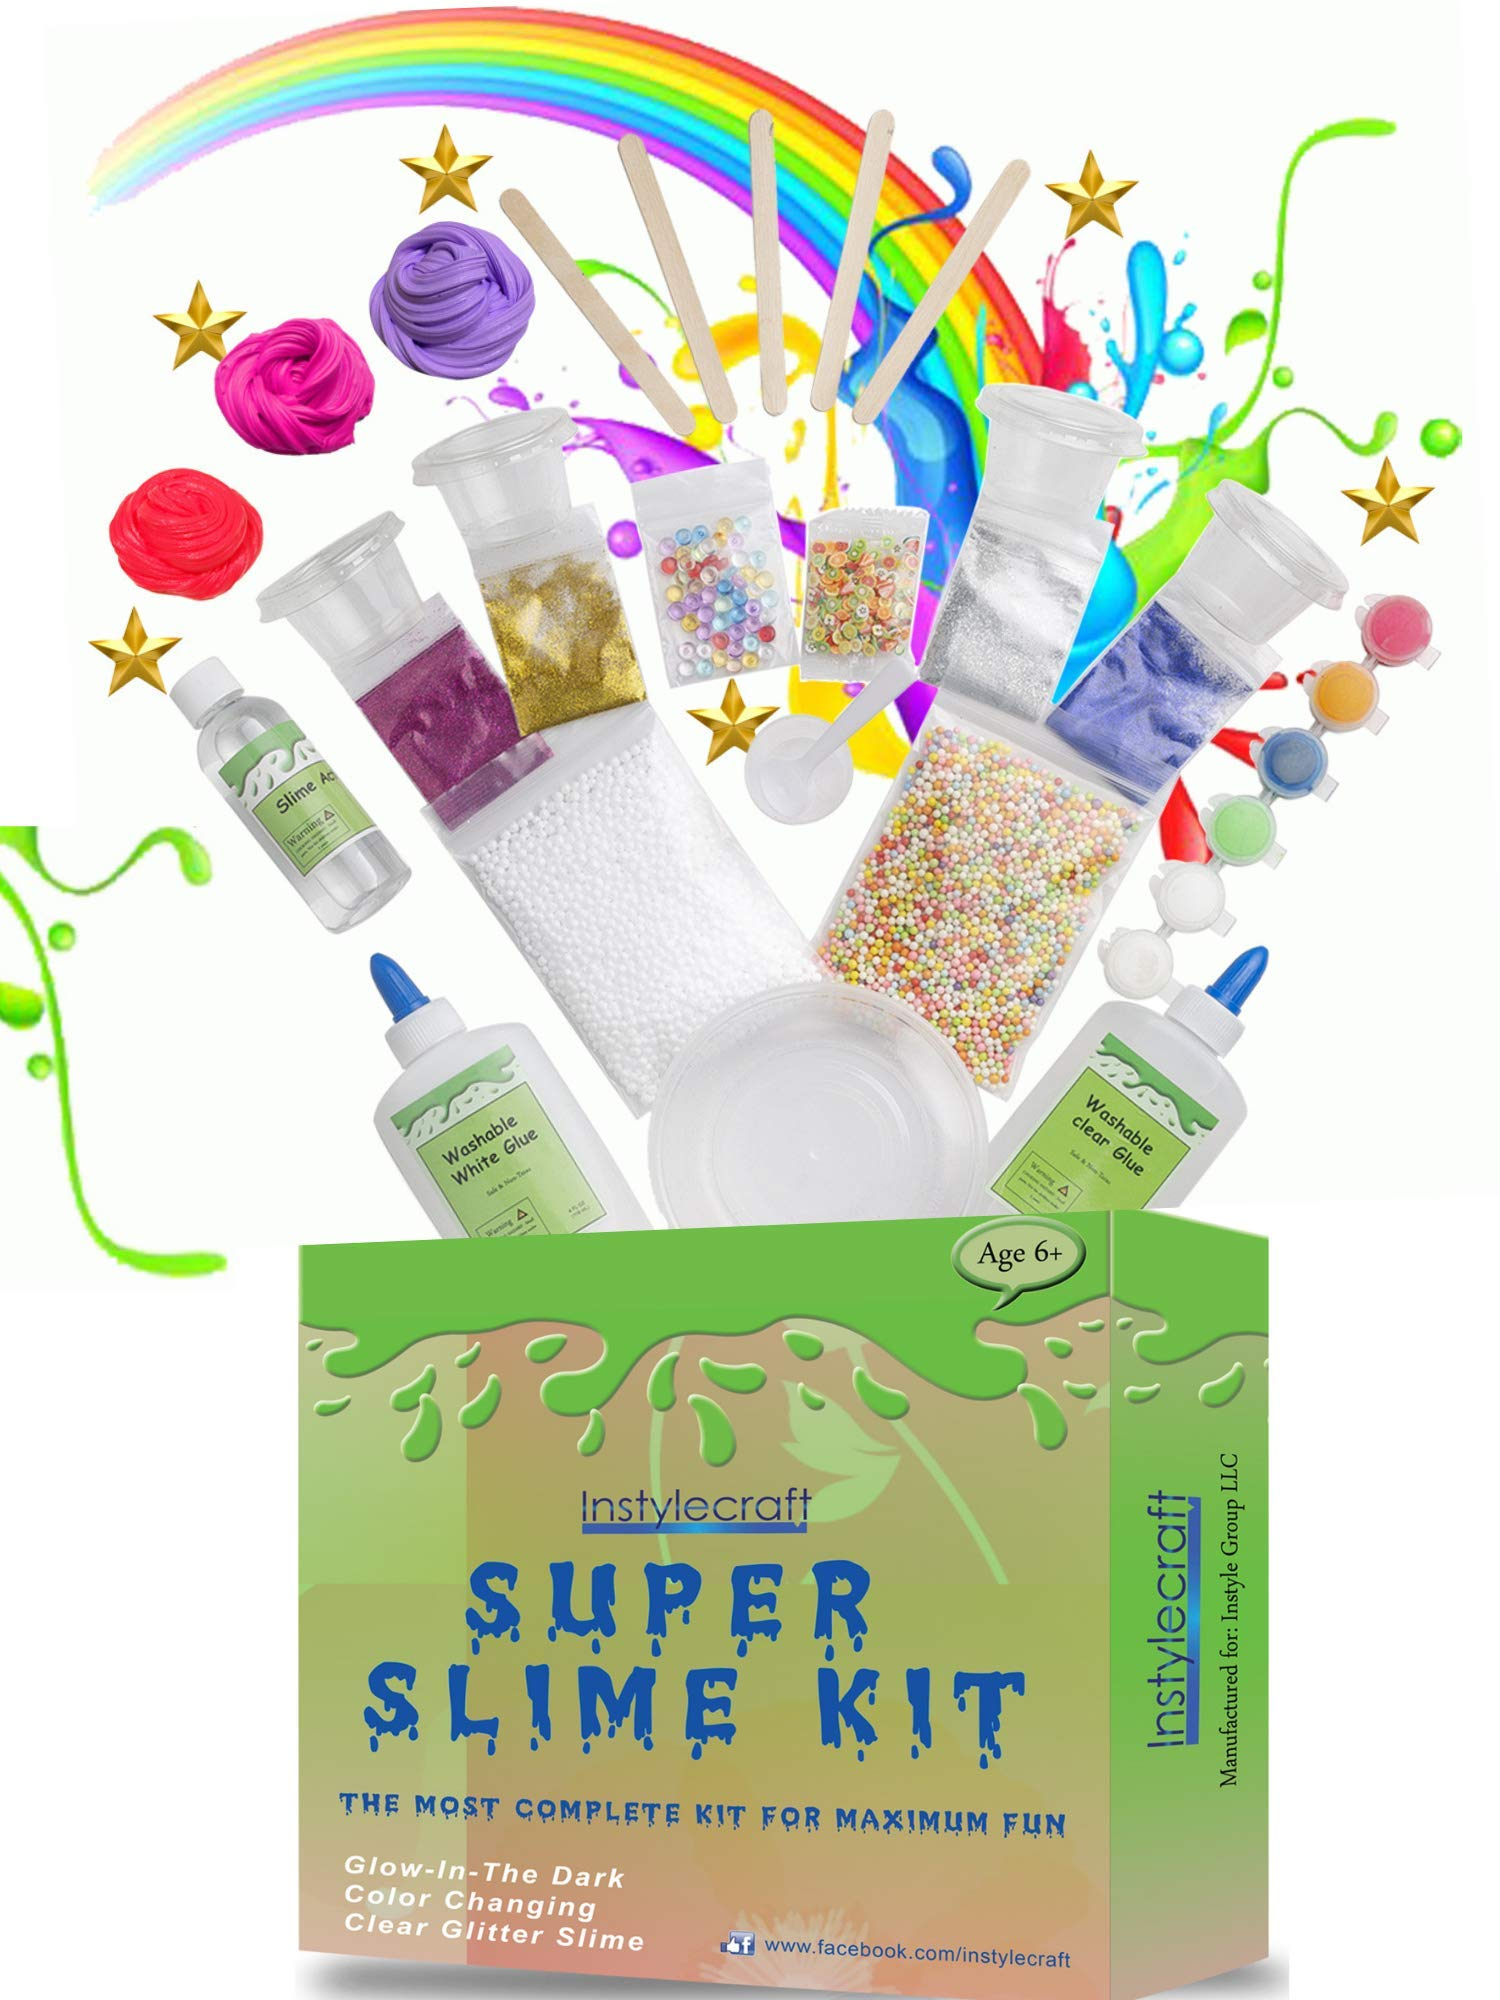 DIY Slime Kit -Learn how to make slime! Make Glow-In-The Dark, Clear, Neon and Glitter Slime - Perfect Gifting Option! Comes With Easy To Make Recipes! Super Slime Making Kit for Boys & Girls! by InStyleCraft (Image #5)